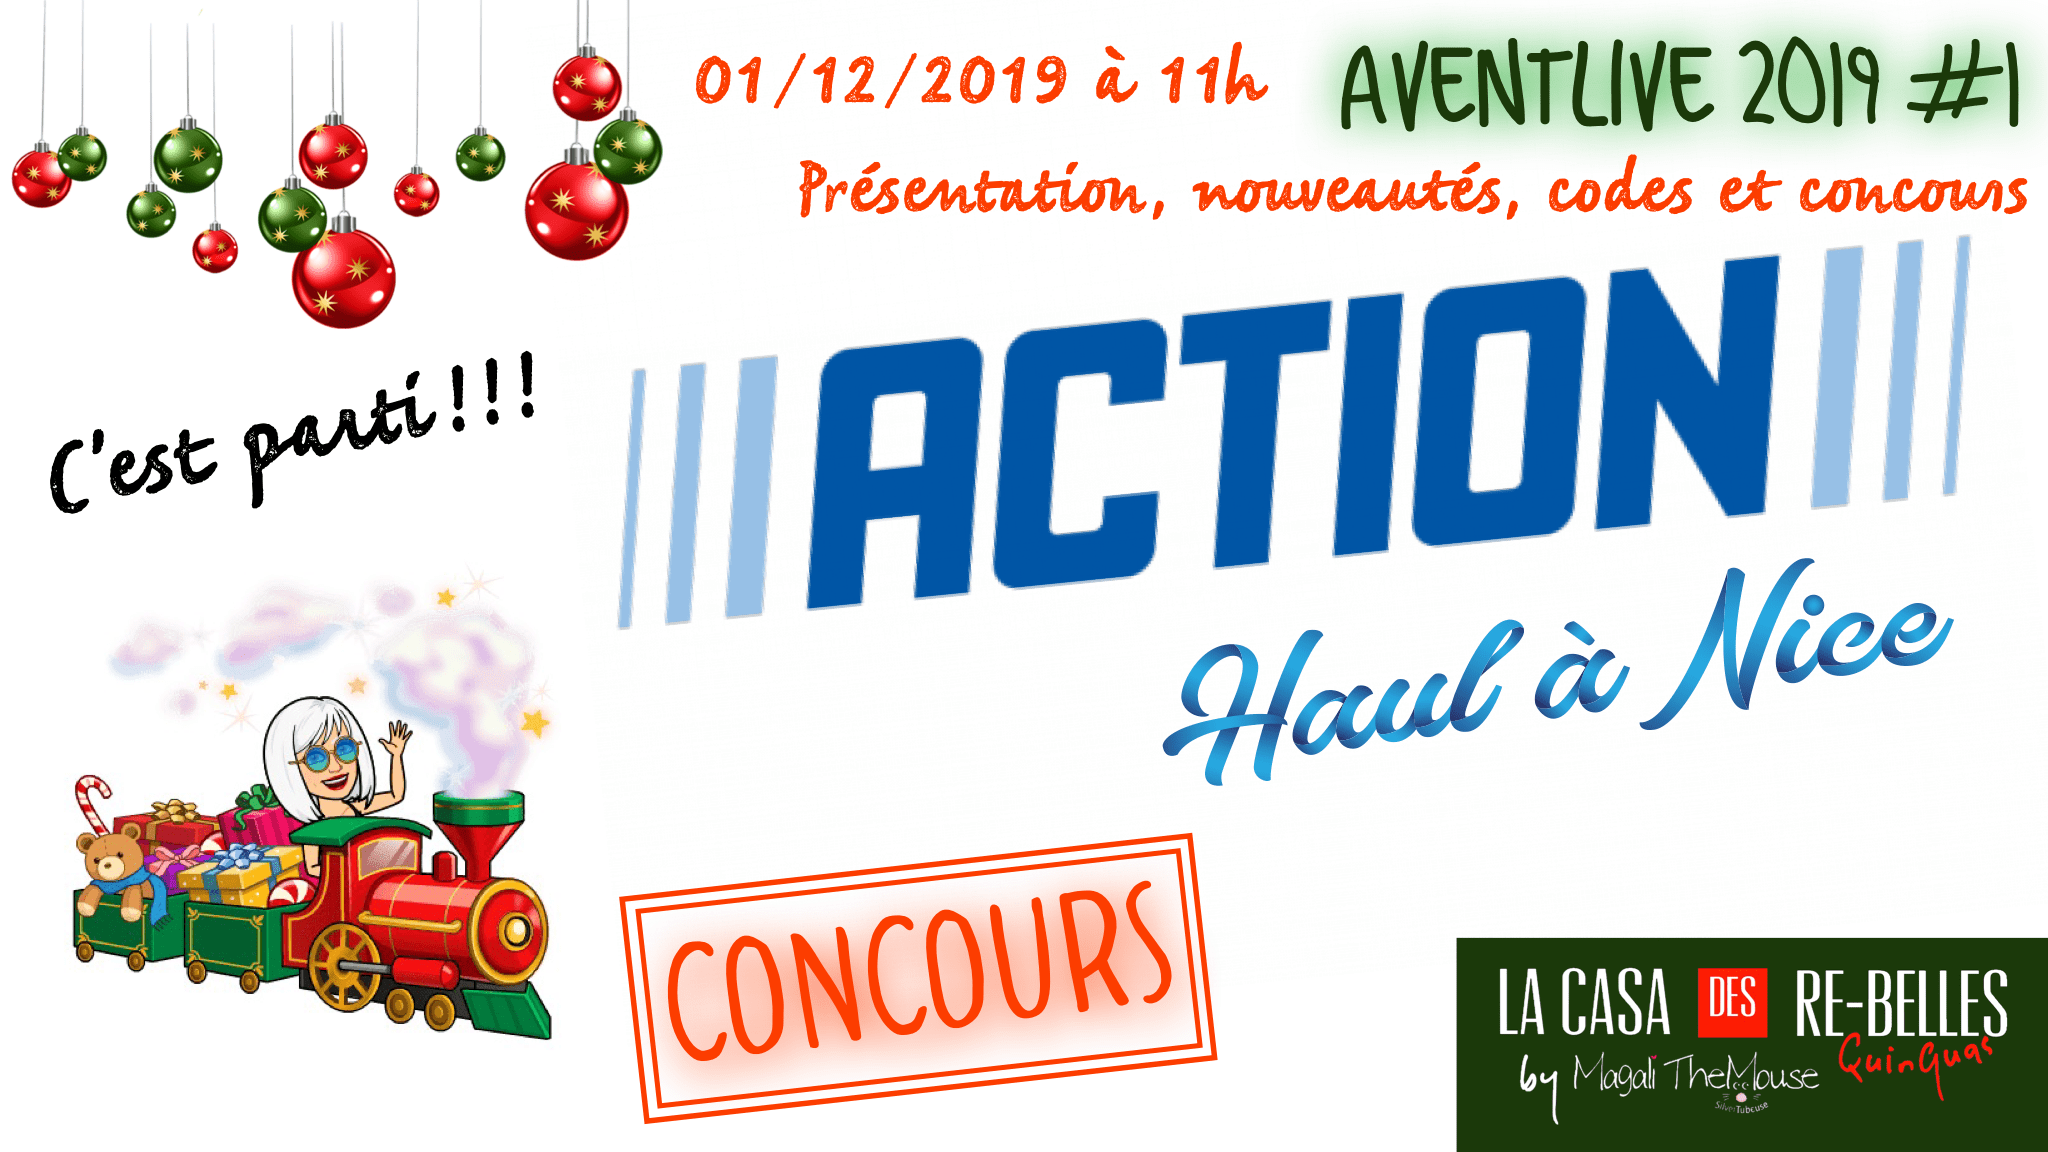 Haul ACTION à Nice, Aventlive 2019